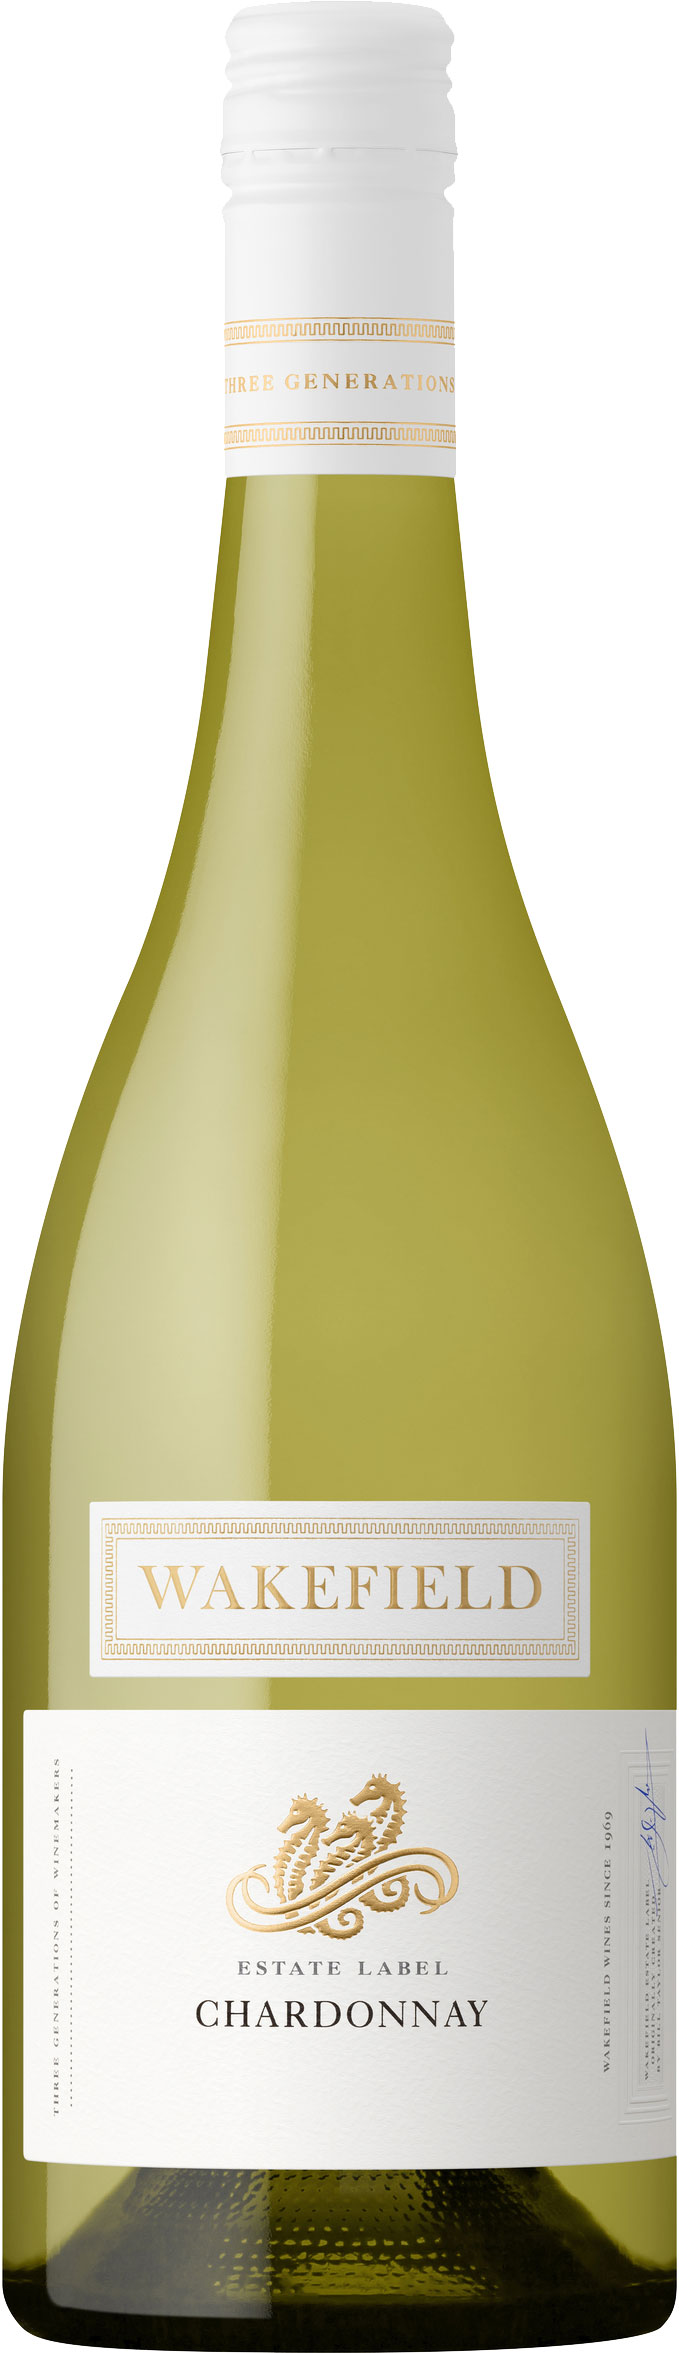 Wakefield Wines - Wakefield Estate Chardonnay 2017 6x 75cl Bottles